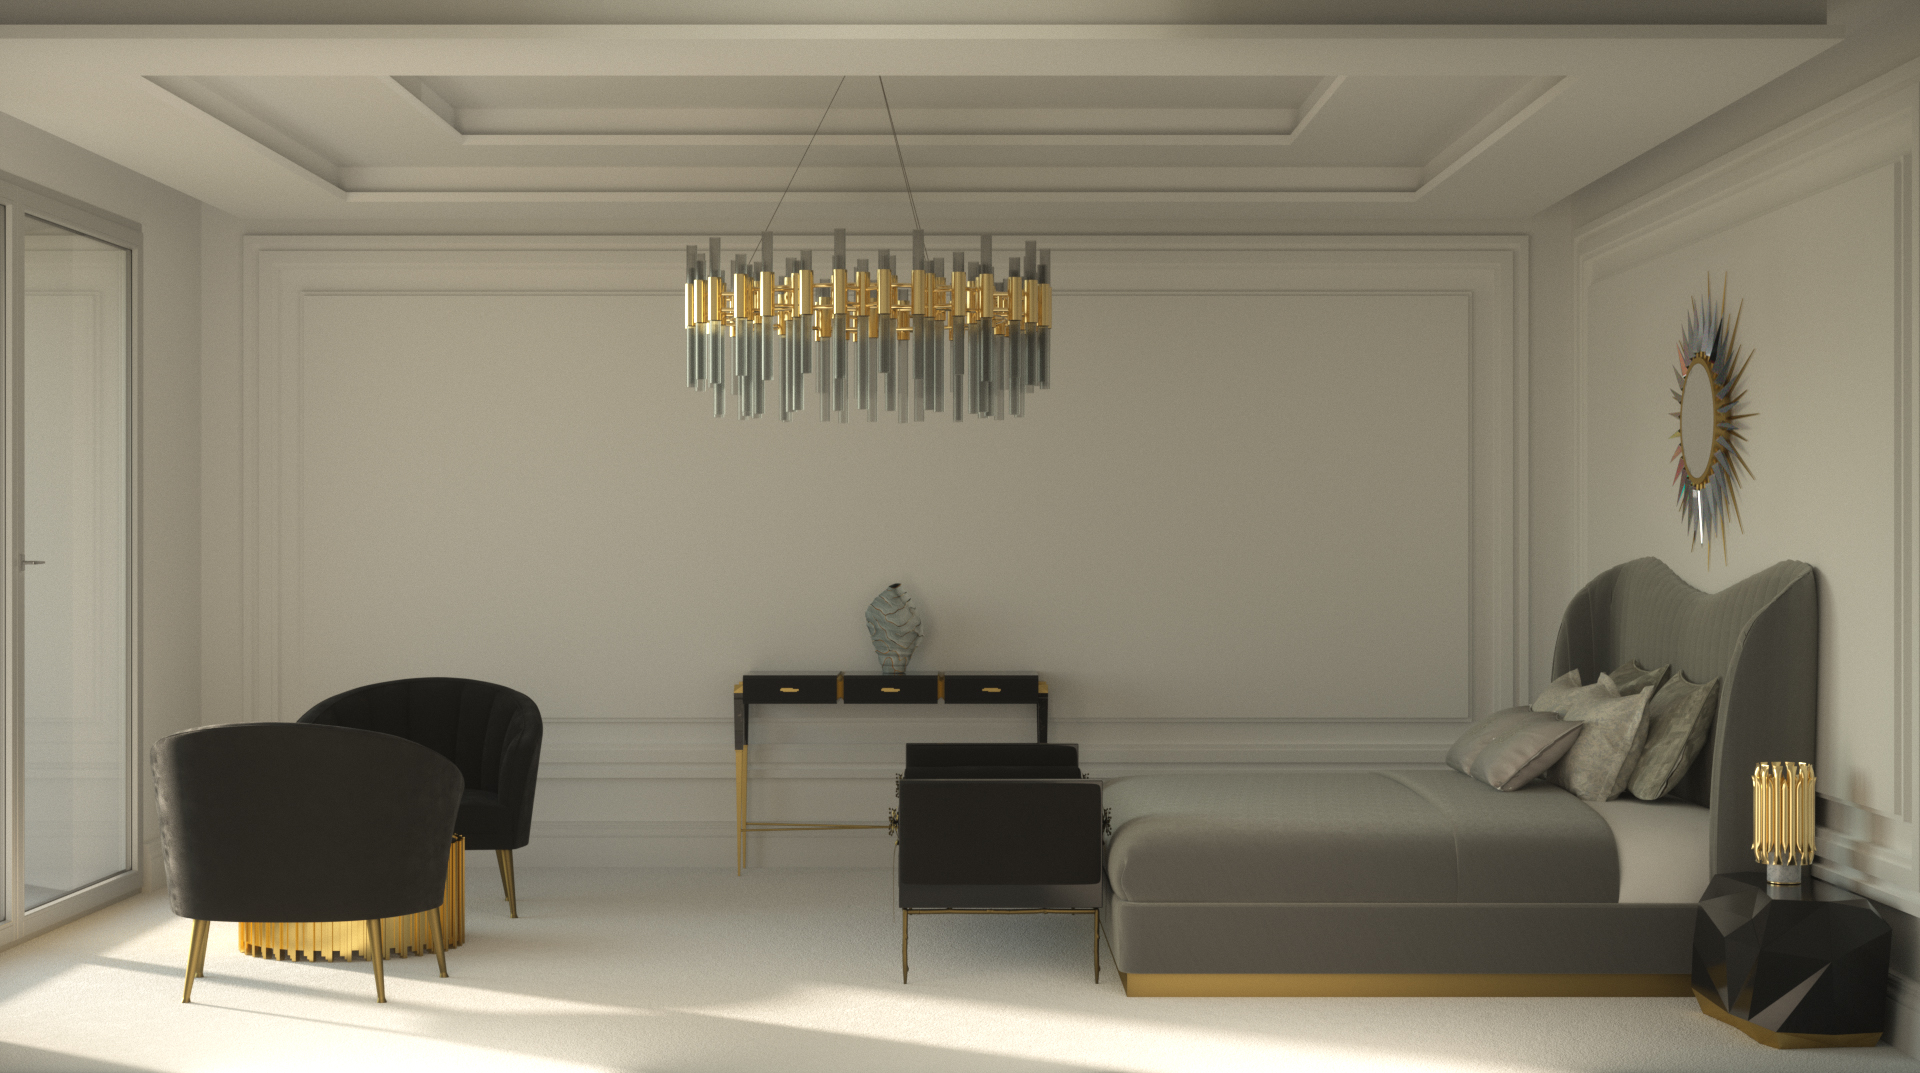 The Importance Of Lighting In Interiors